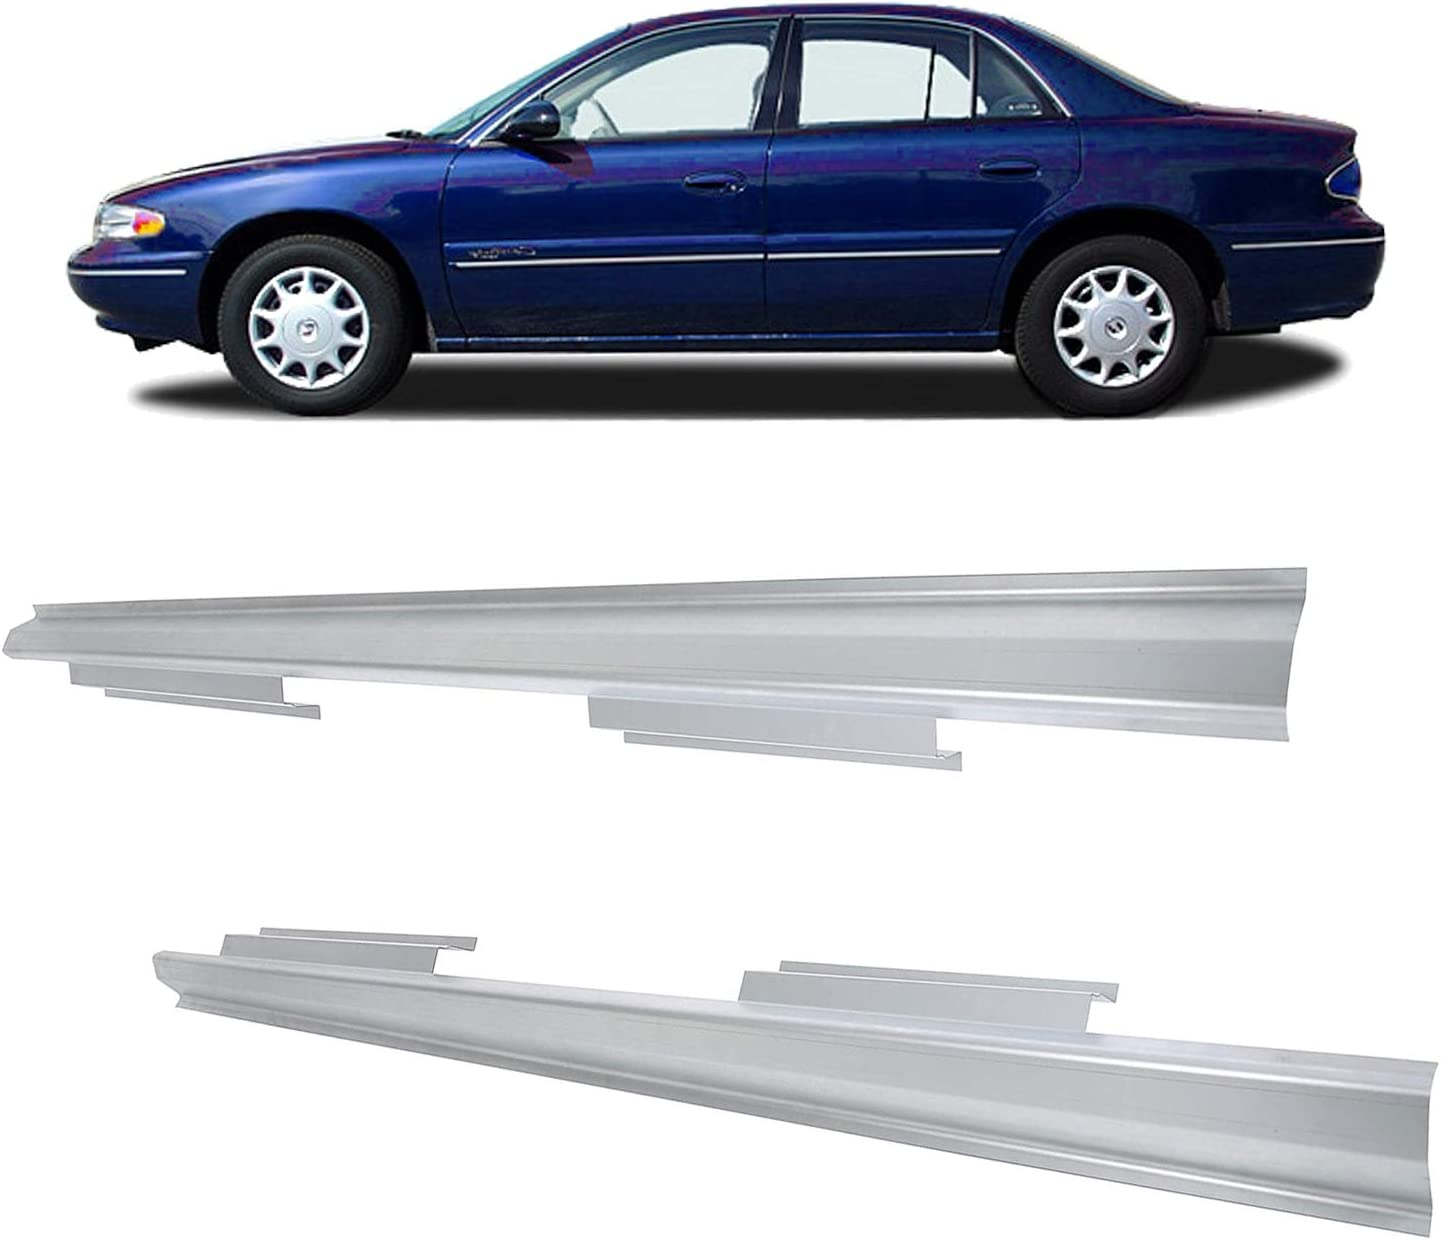 ECOTRIC Pair Outer Rocker Panels and 1997-2005 Max 67% OFF Luxury goods For Century Buick